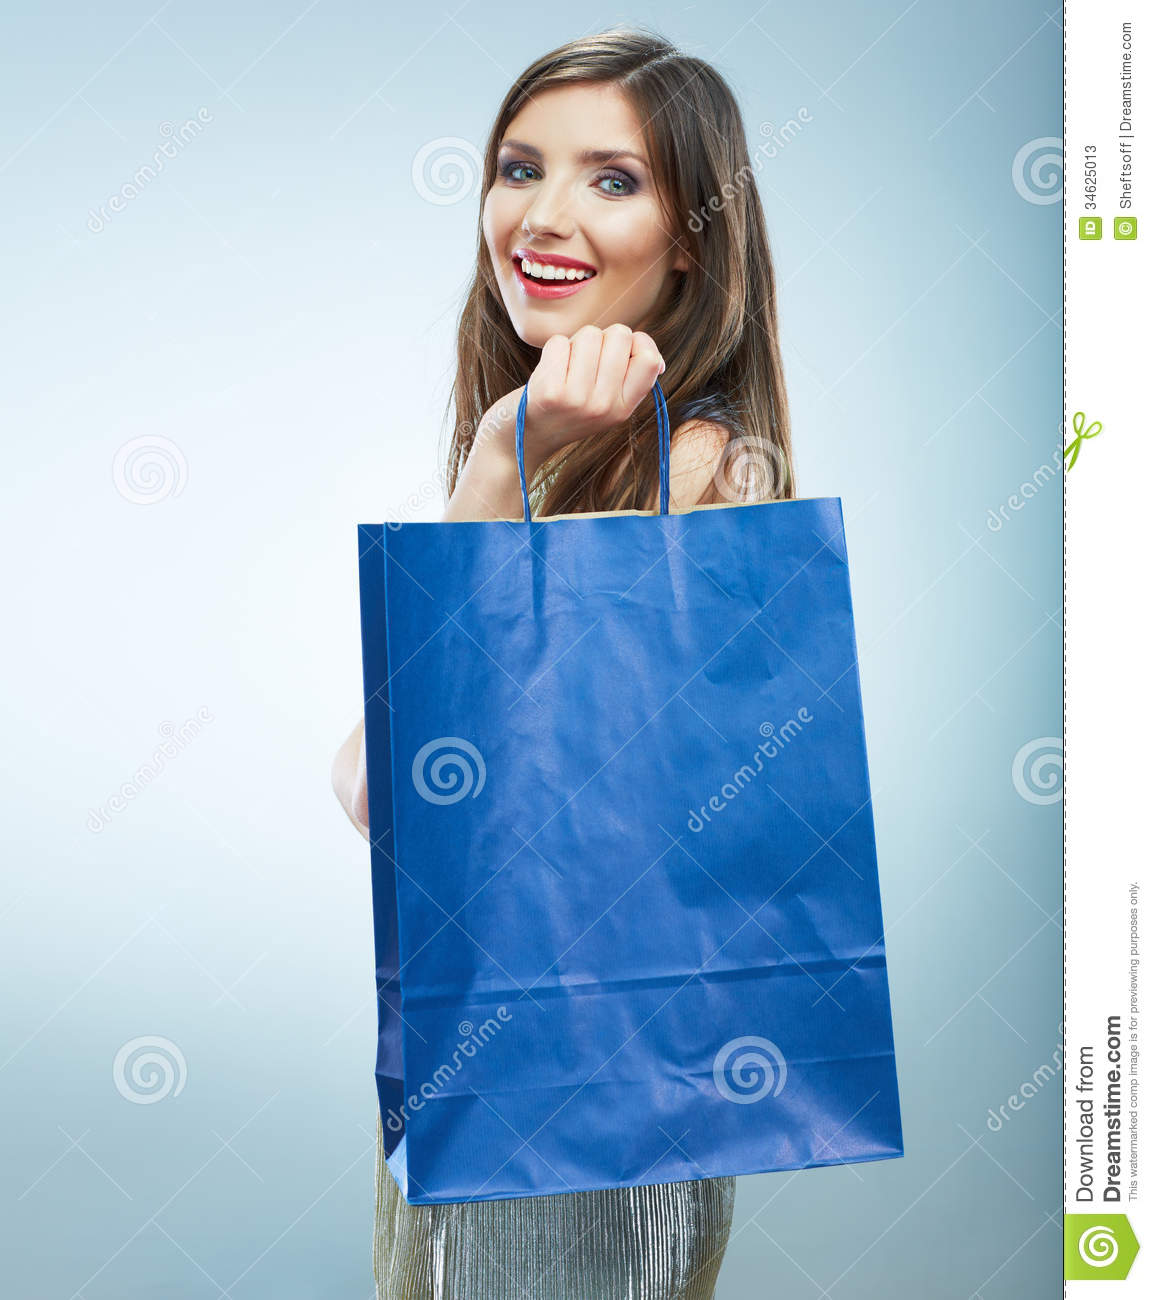 Portrait of happy smiling woman hold shopping bag female mode stock photos image 34625013 for Mode model